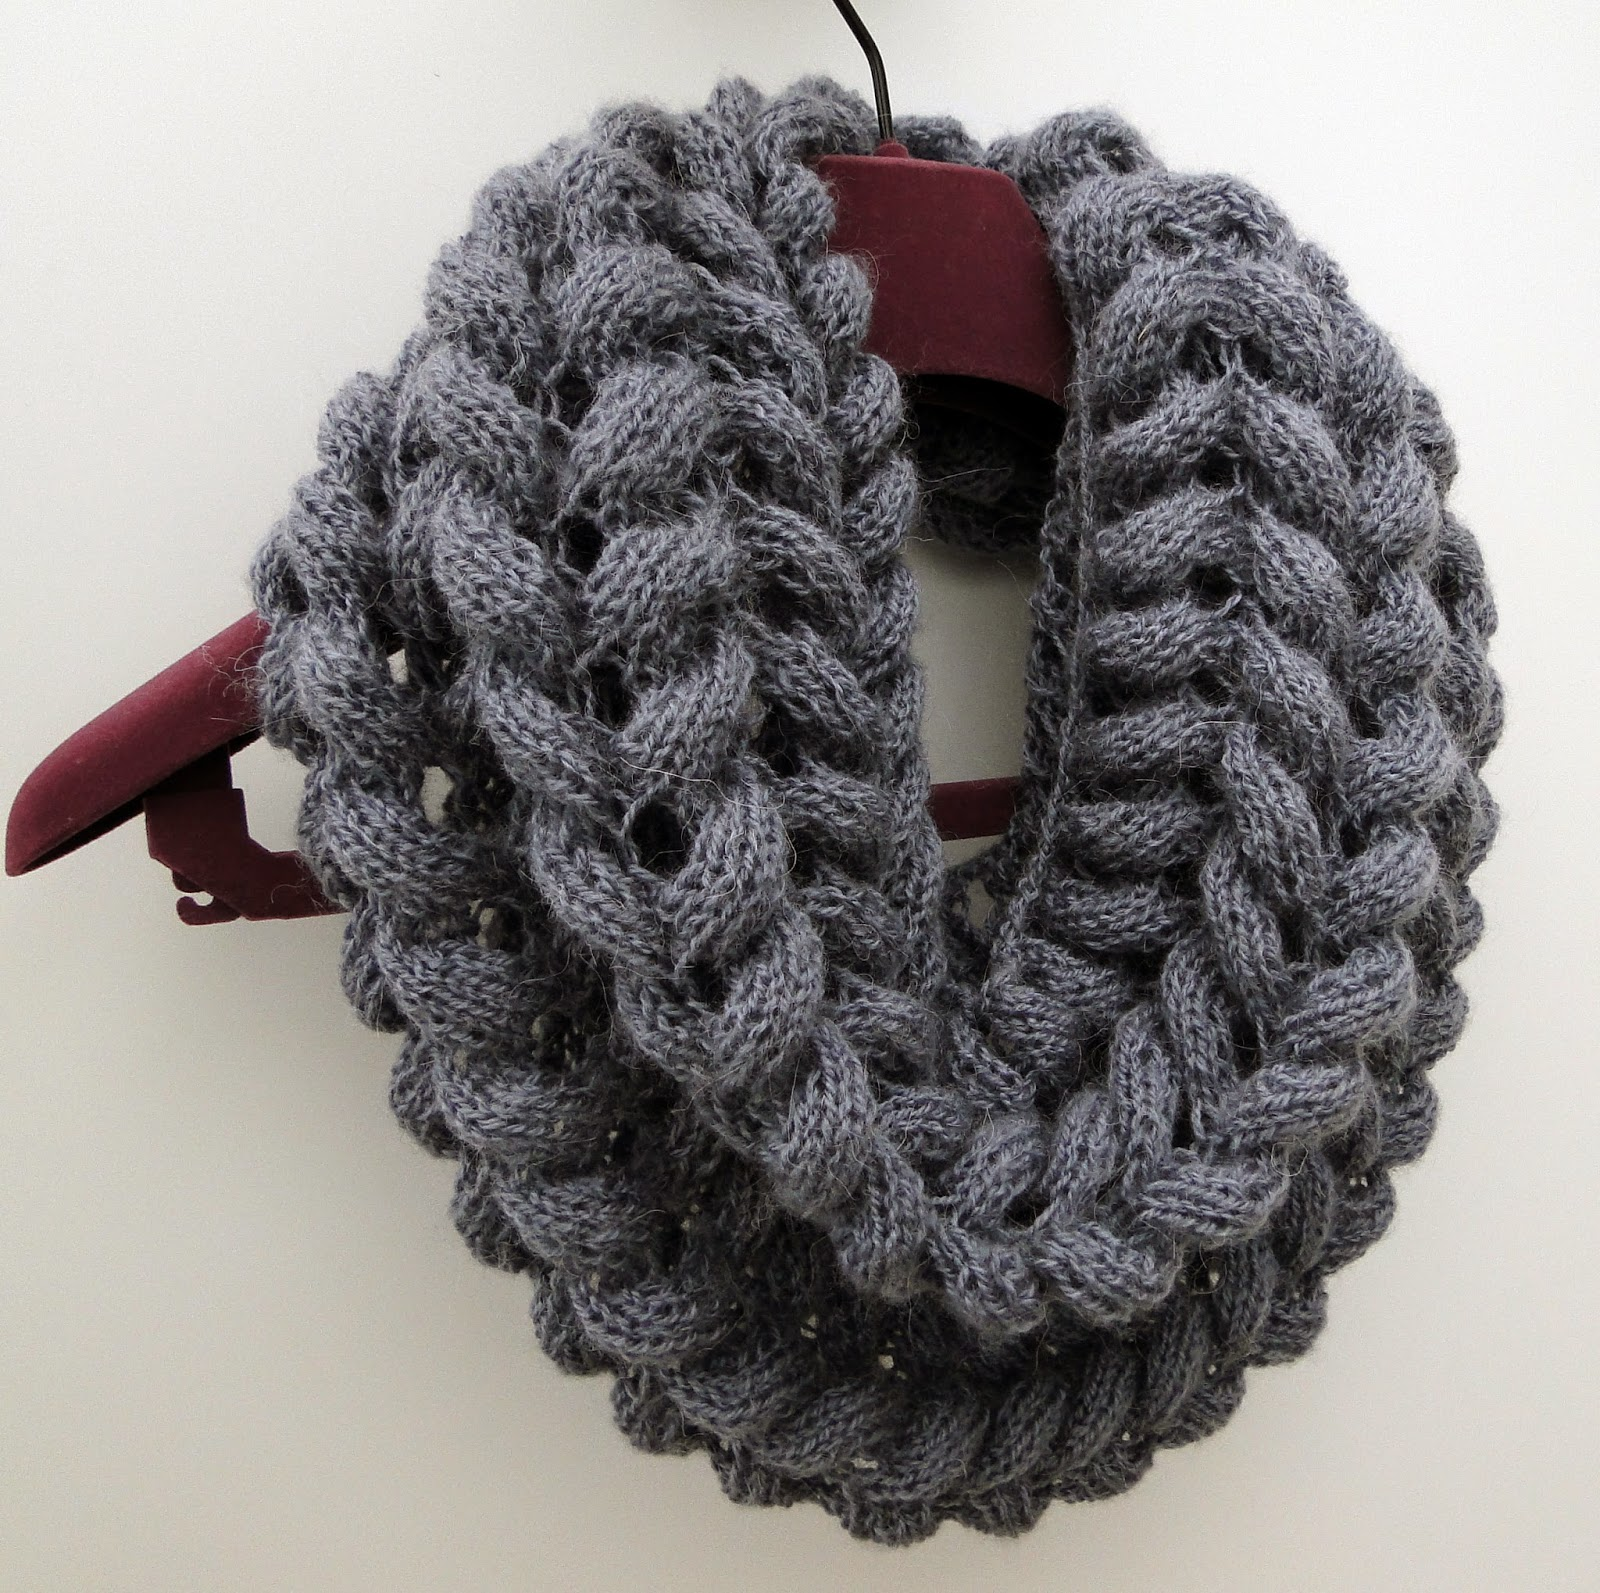 Knitting Patterns Scarf Cowl : 3 Rabbits Patterns: Scarf Cowl Knitting Pattern